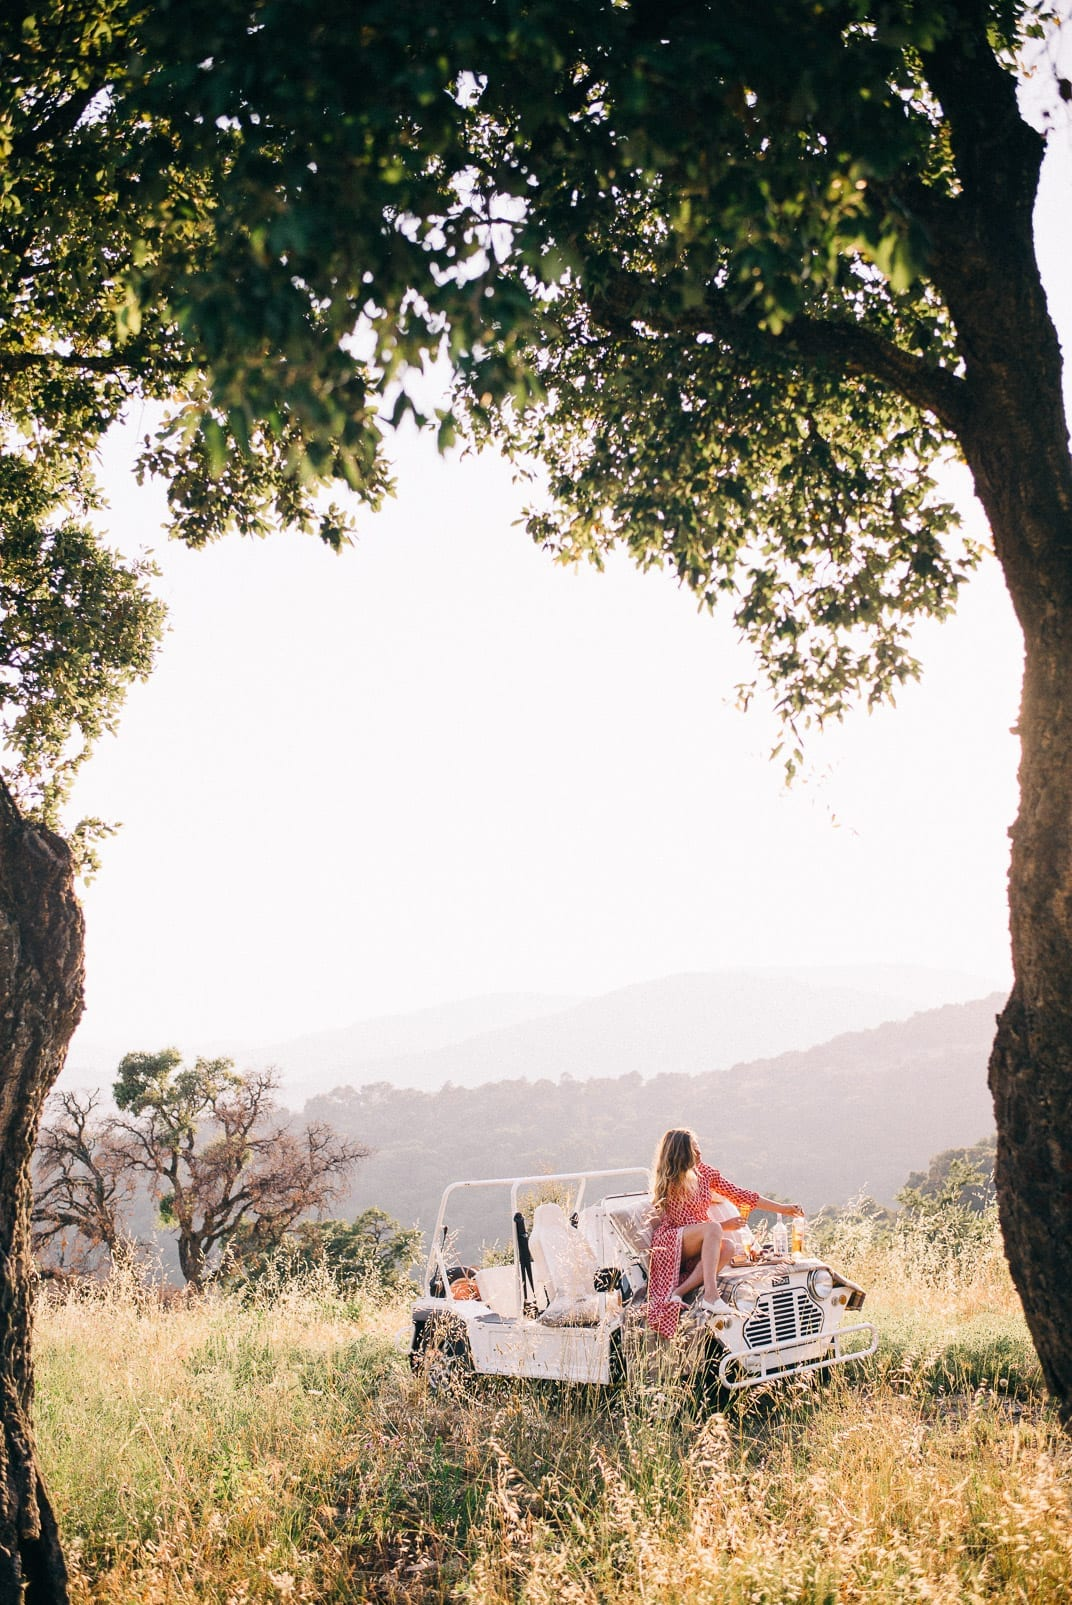 The Most Romantic Things - Sunset Picnic